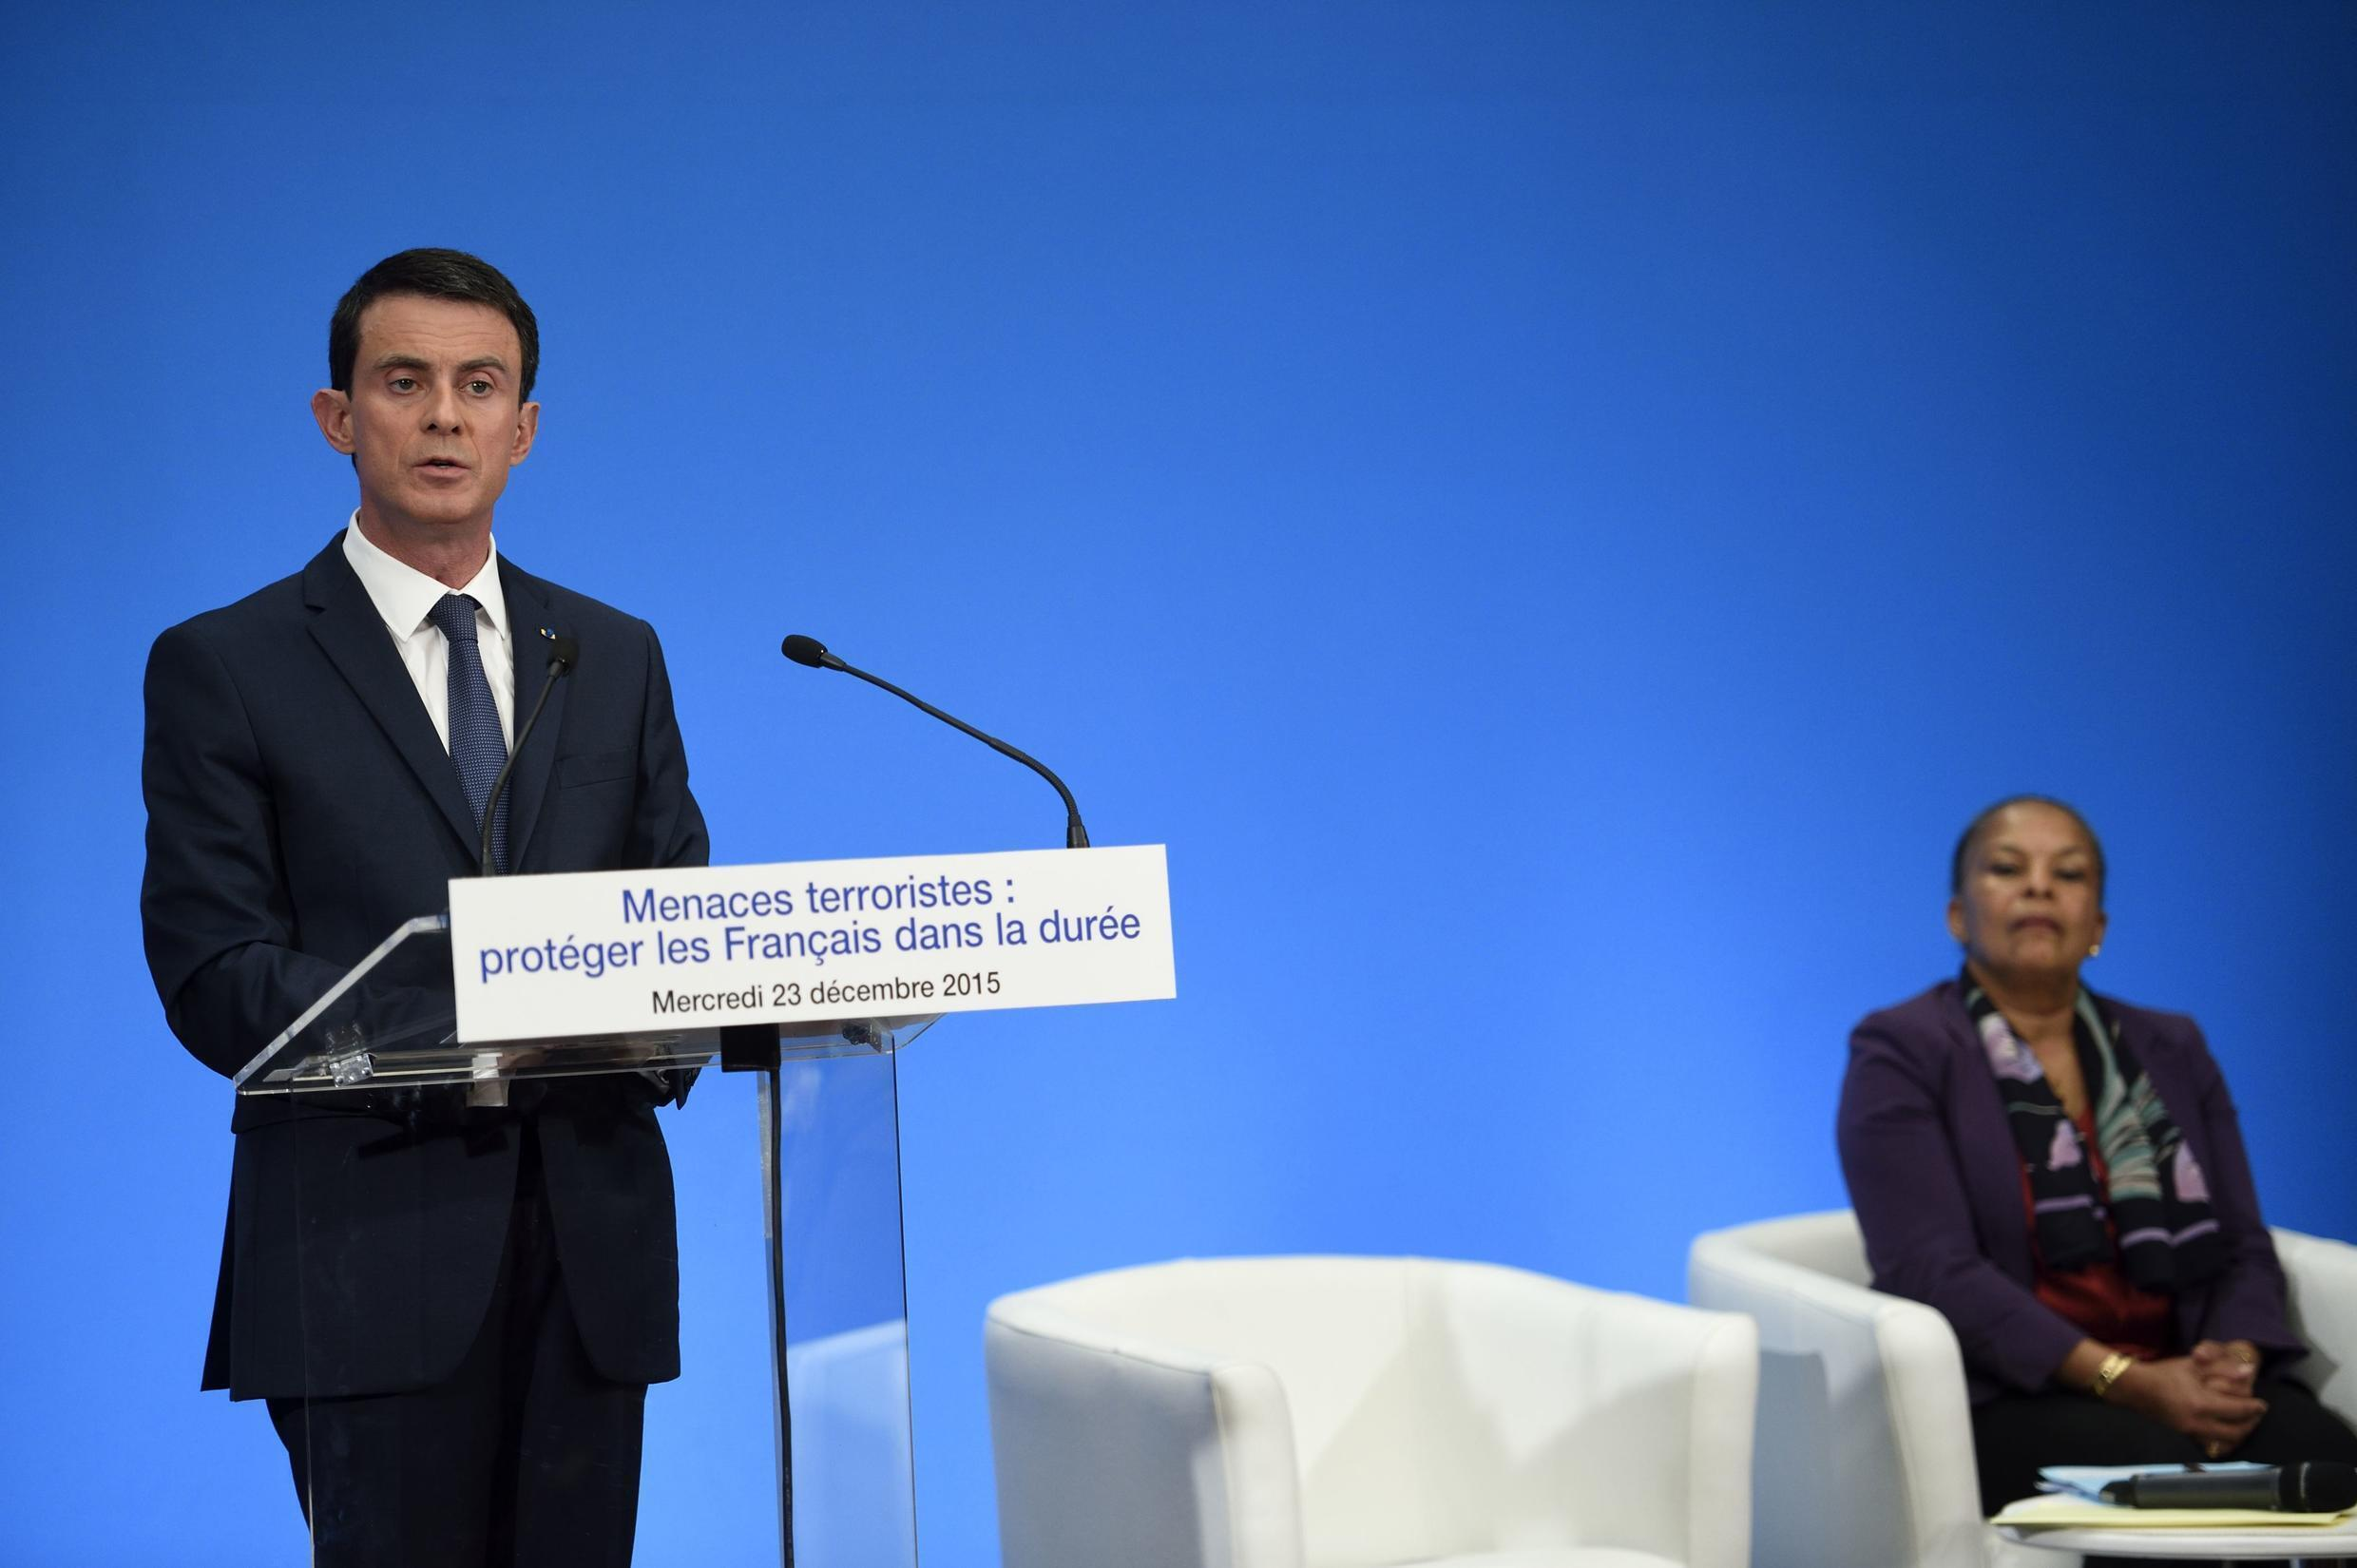 French Prime Minister Manuel Valls (L) discusses the constitutional changes in the presence of Justice Minister Christiane Taubira who had earlier announced that the nationality measure would not be proposed